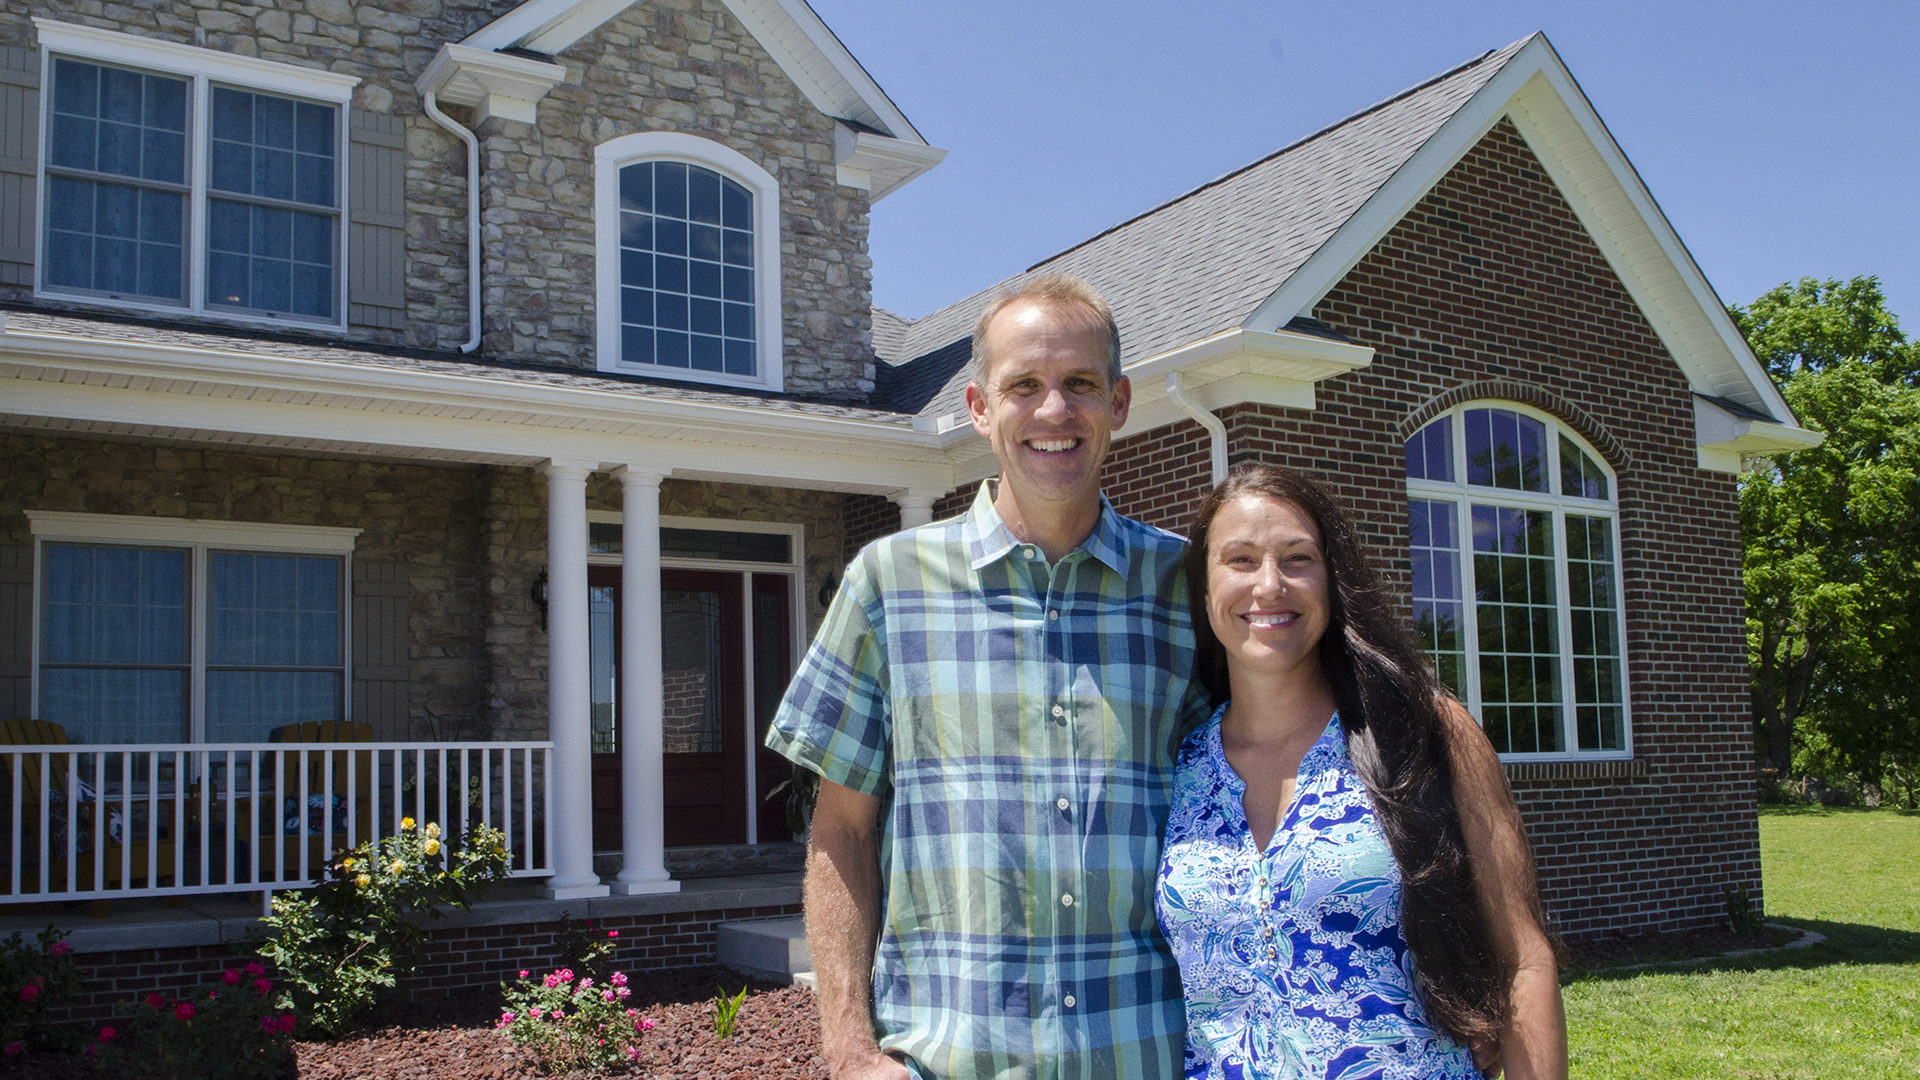 A man and woman standing in front of their newly constructed home.